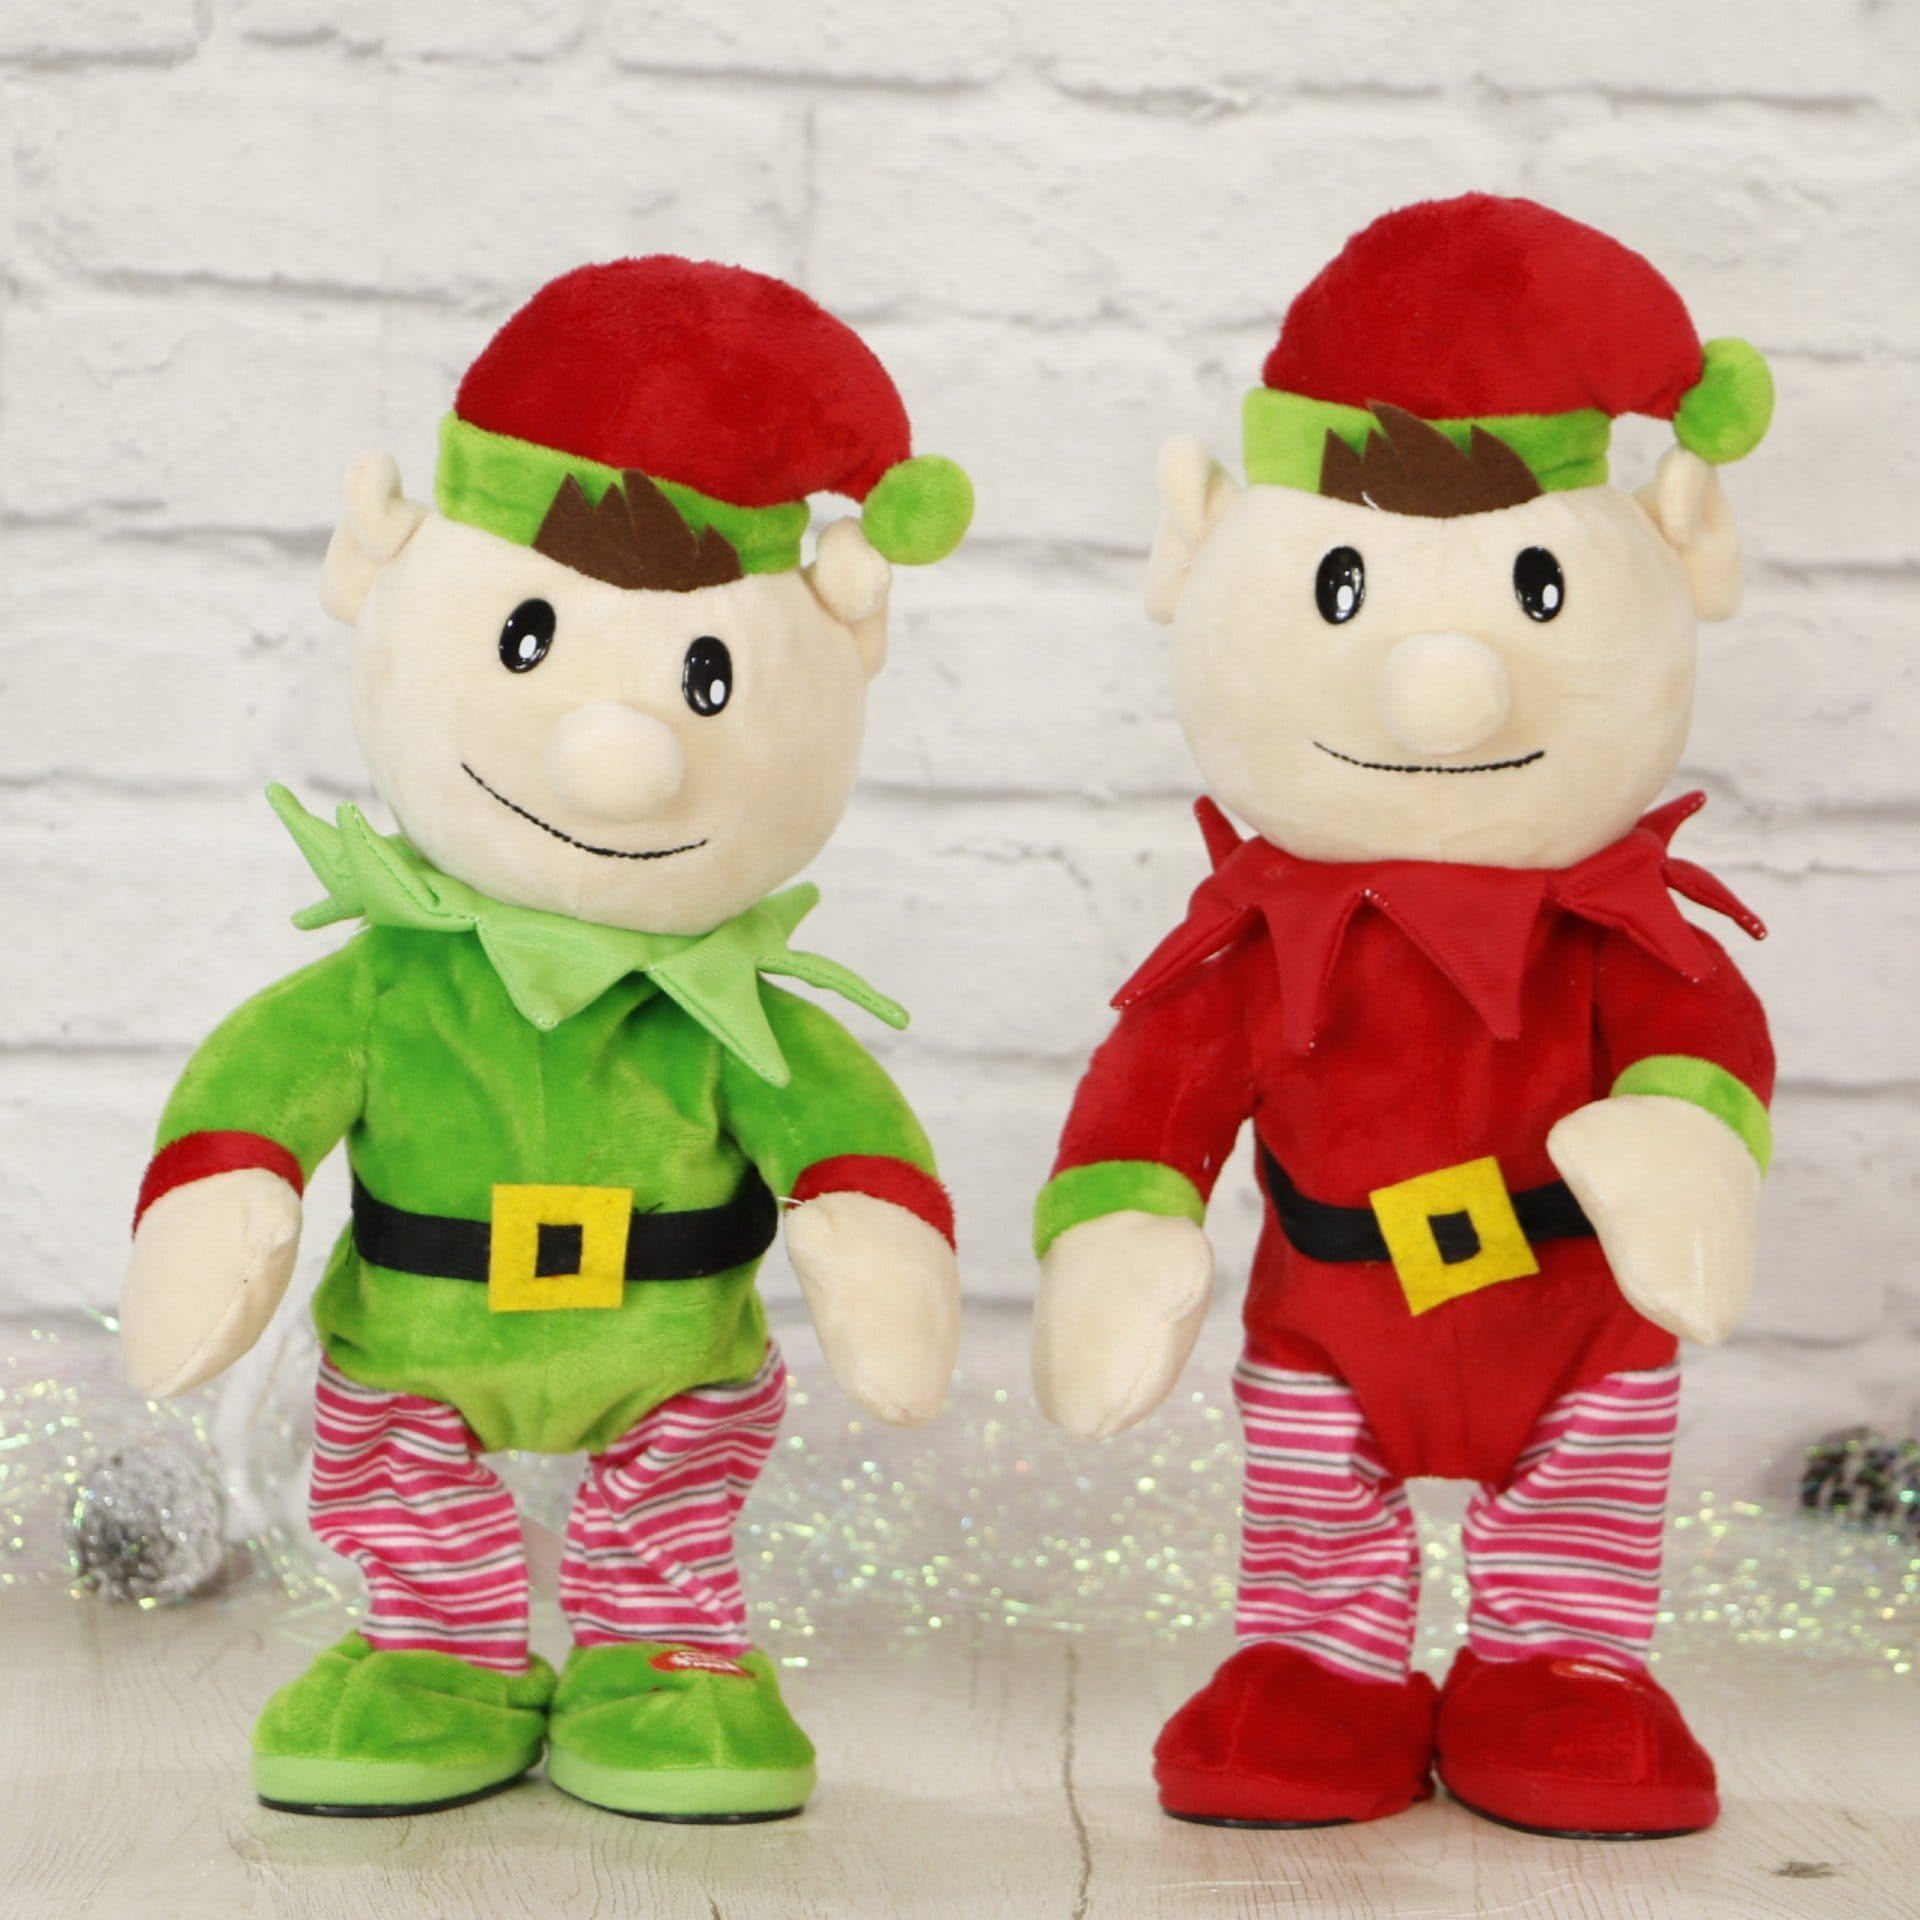 Singing and Dancing Elf Plush Toy